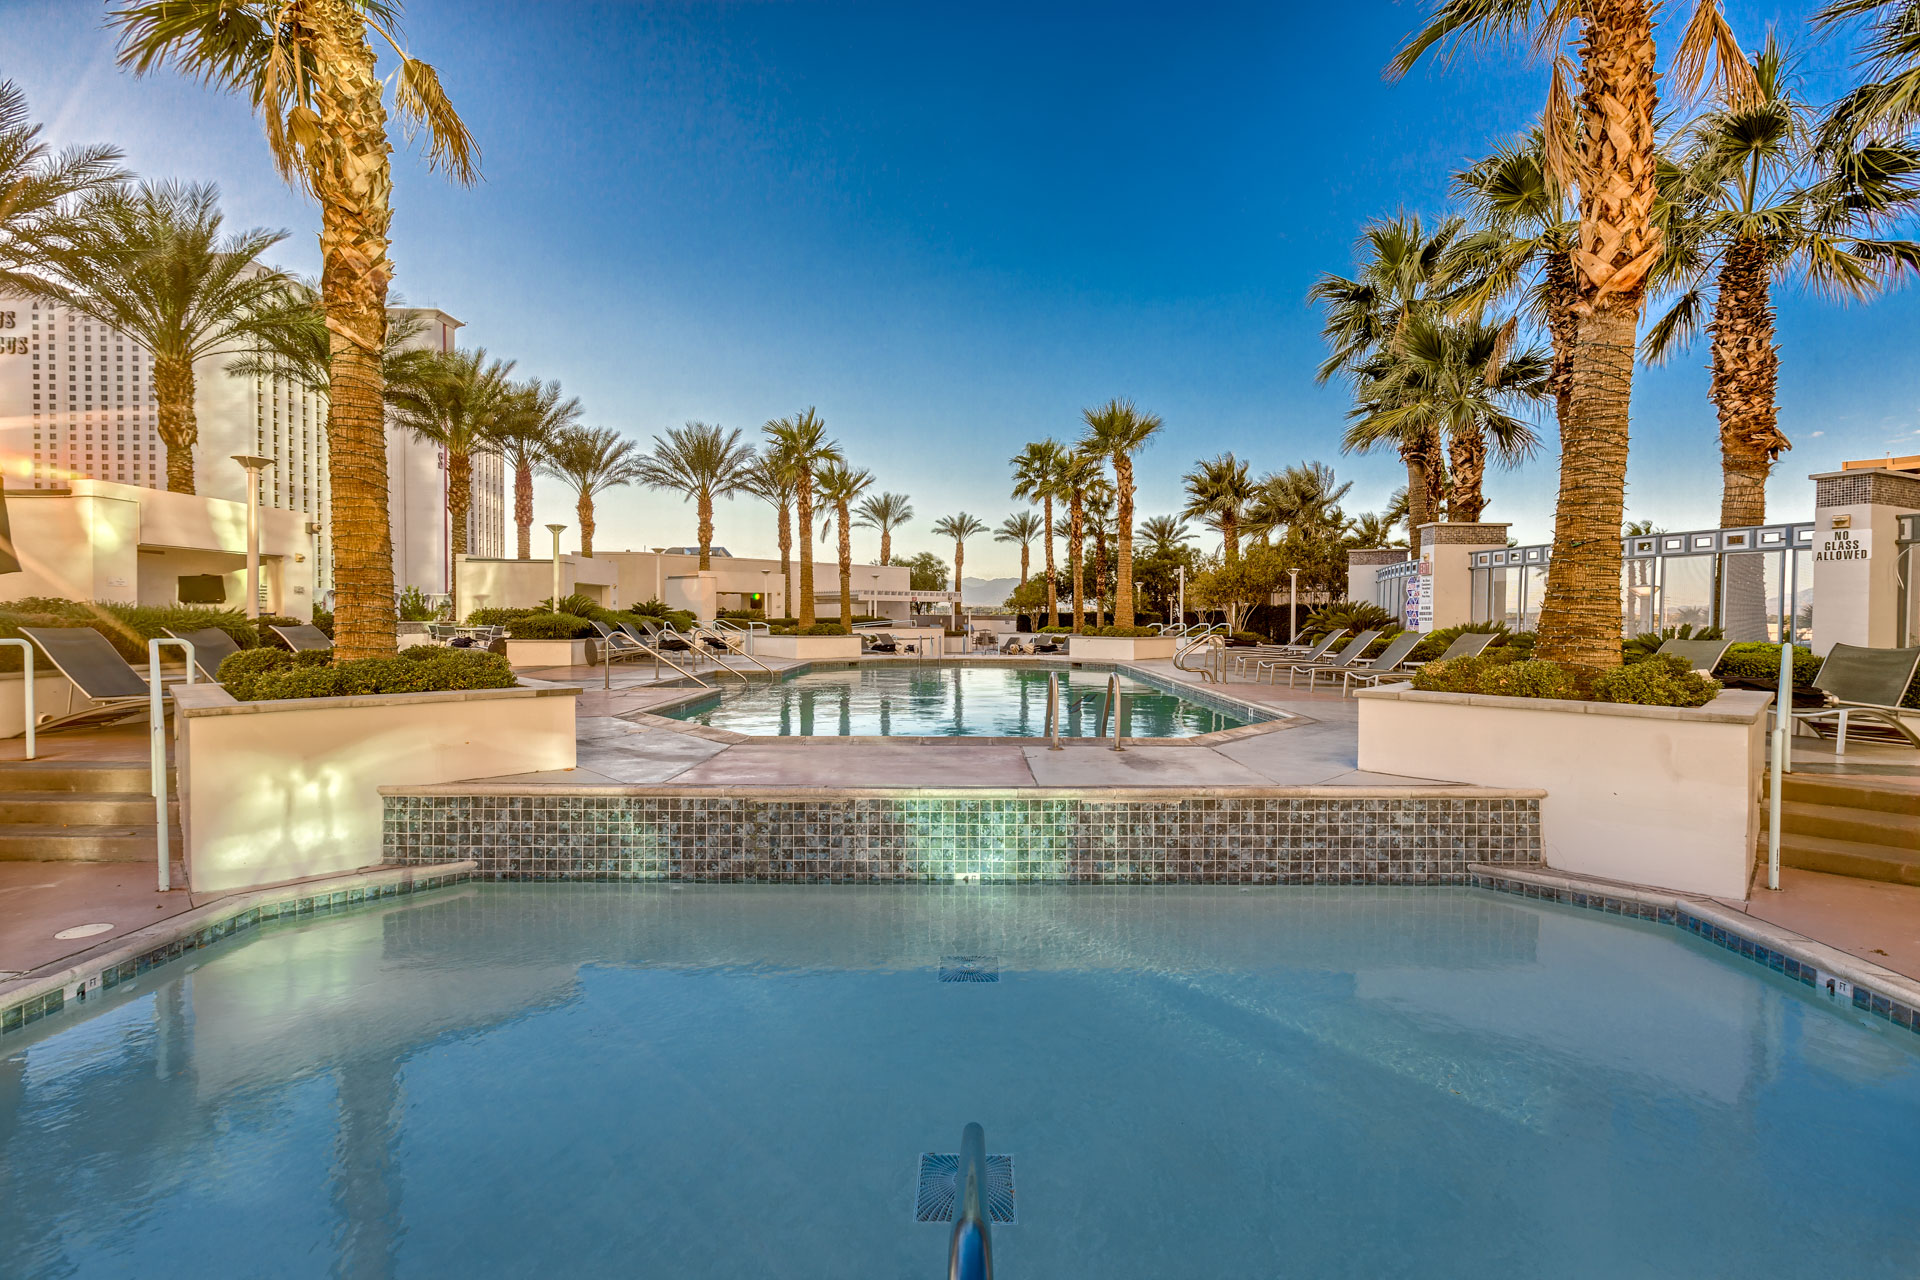 Sky-Las-vegas-condos-pool-spa-area